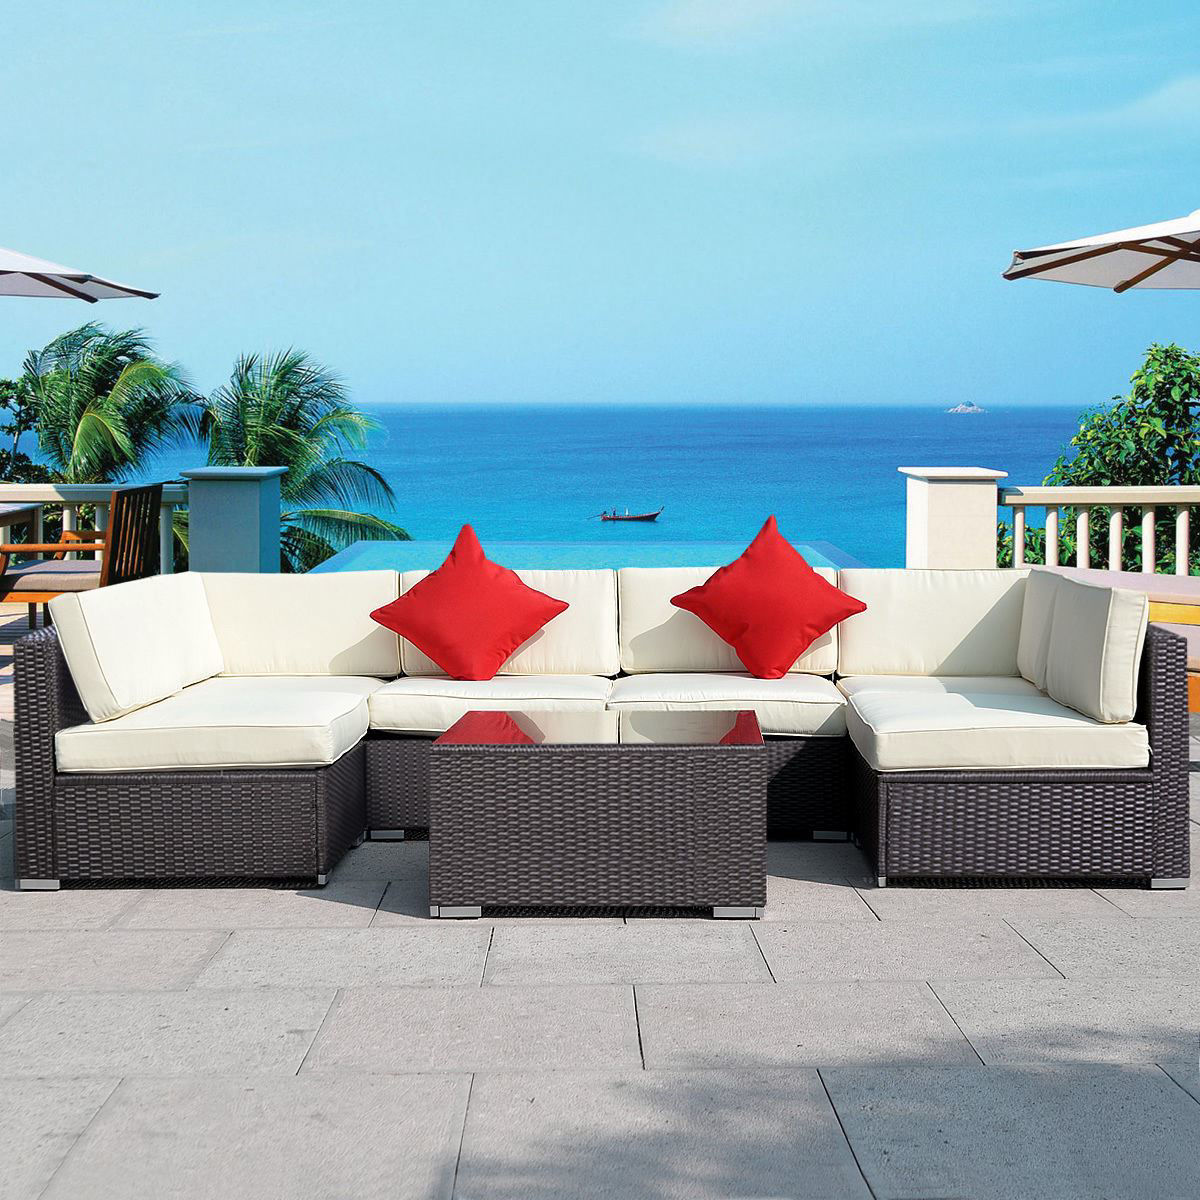 Picture of Outdoor Furniture Set Sectional Couch - 7 Pieces